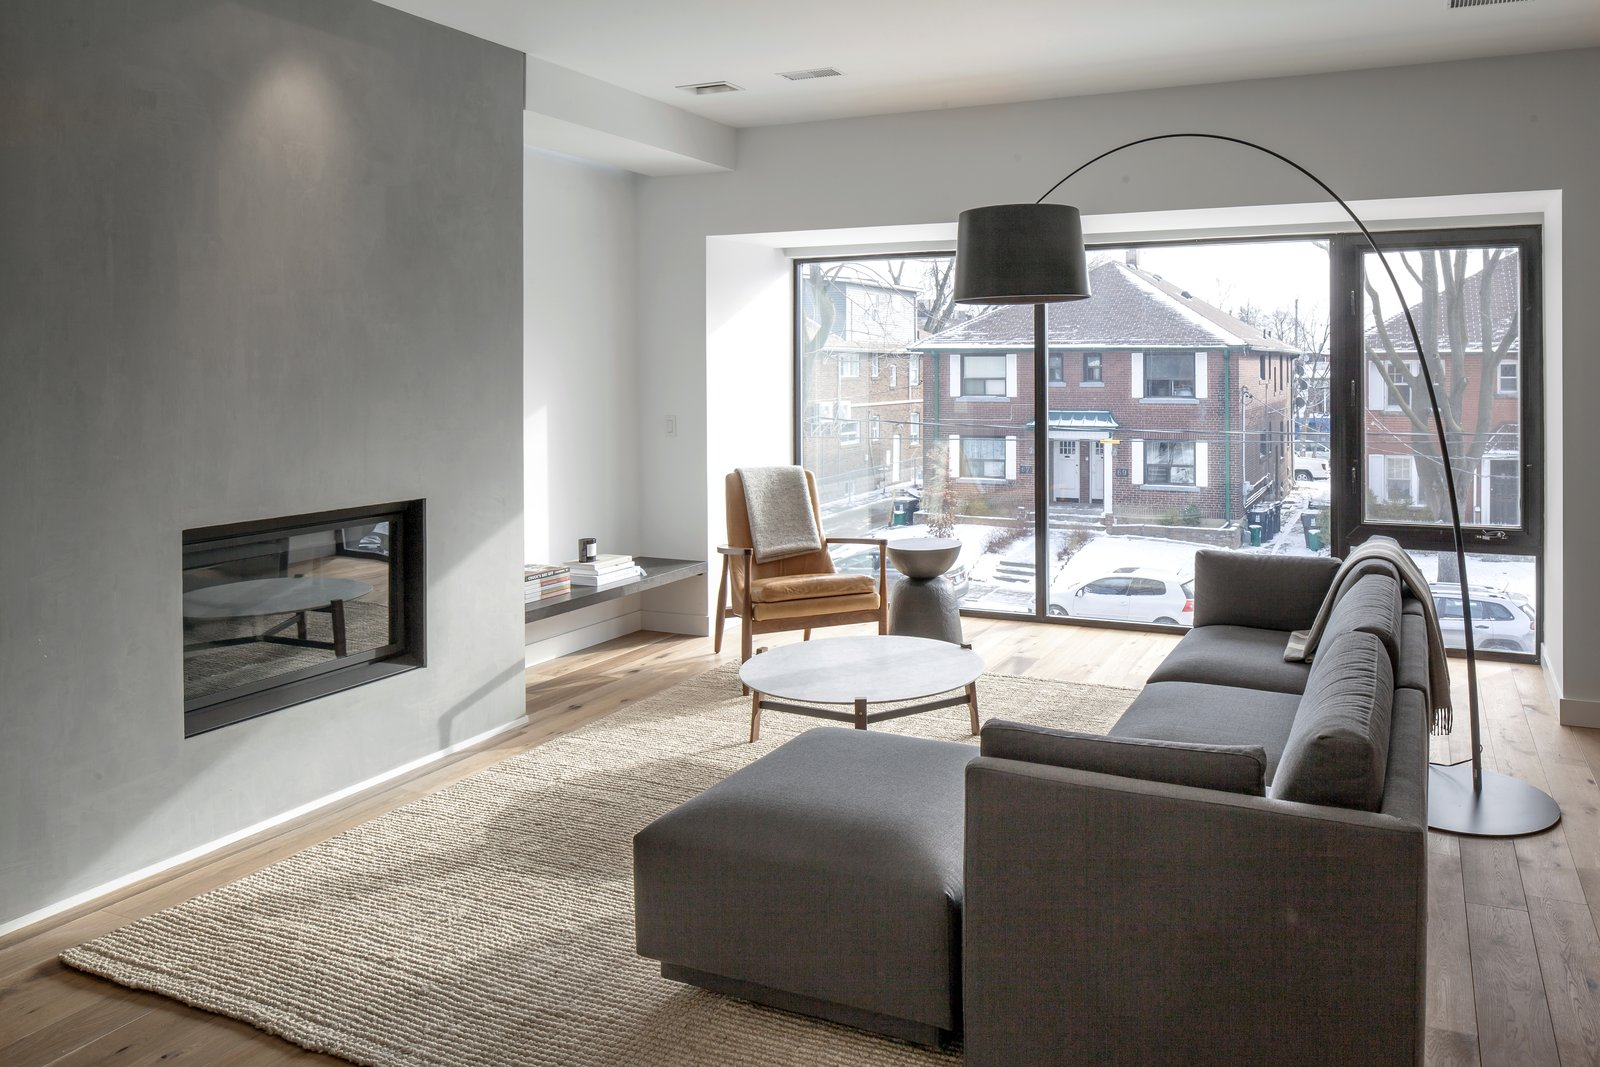 On the triplex's second floor, the homeowners' living room is framed by a sizeable bay window. The room centers on an EQ3 couch and Blu Dot's Free Range coffee table. A fireplace, finished with plaster, serves as a source of added warmth during the winter and a focal point all year round. The interiors were designed by Mason Studio. A Spacious Toronto Triplex Responds to Rising Urban Density - Photo 3 of 9